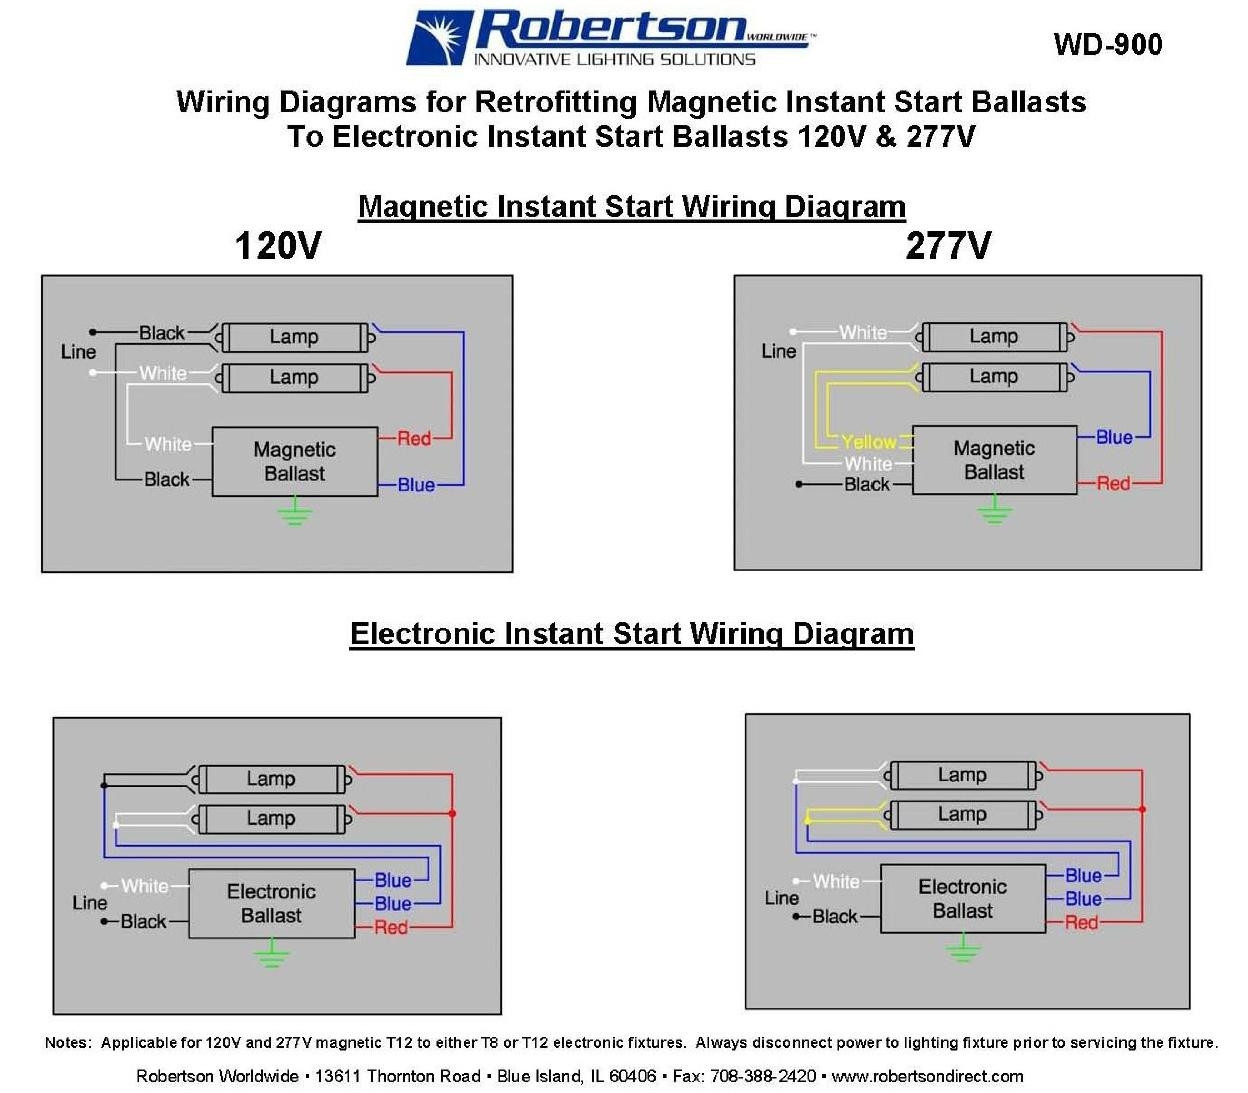 ballast wiring diagram t5 t8 led tube wiring diagrams wiring diagrams AccuStart Electronic Ballast workhorse 5 ballast wiring simple wiring diagrams rh 49 kamikaze187 de 4 lamp ballast wiring diagram t5 fluorescent ballast